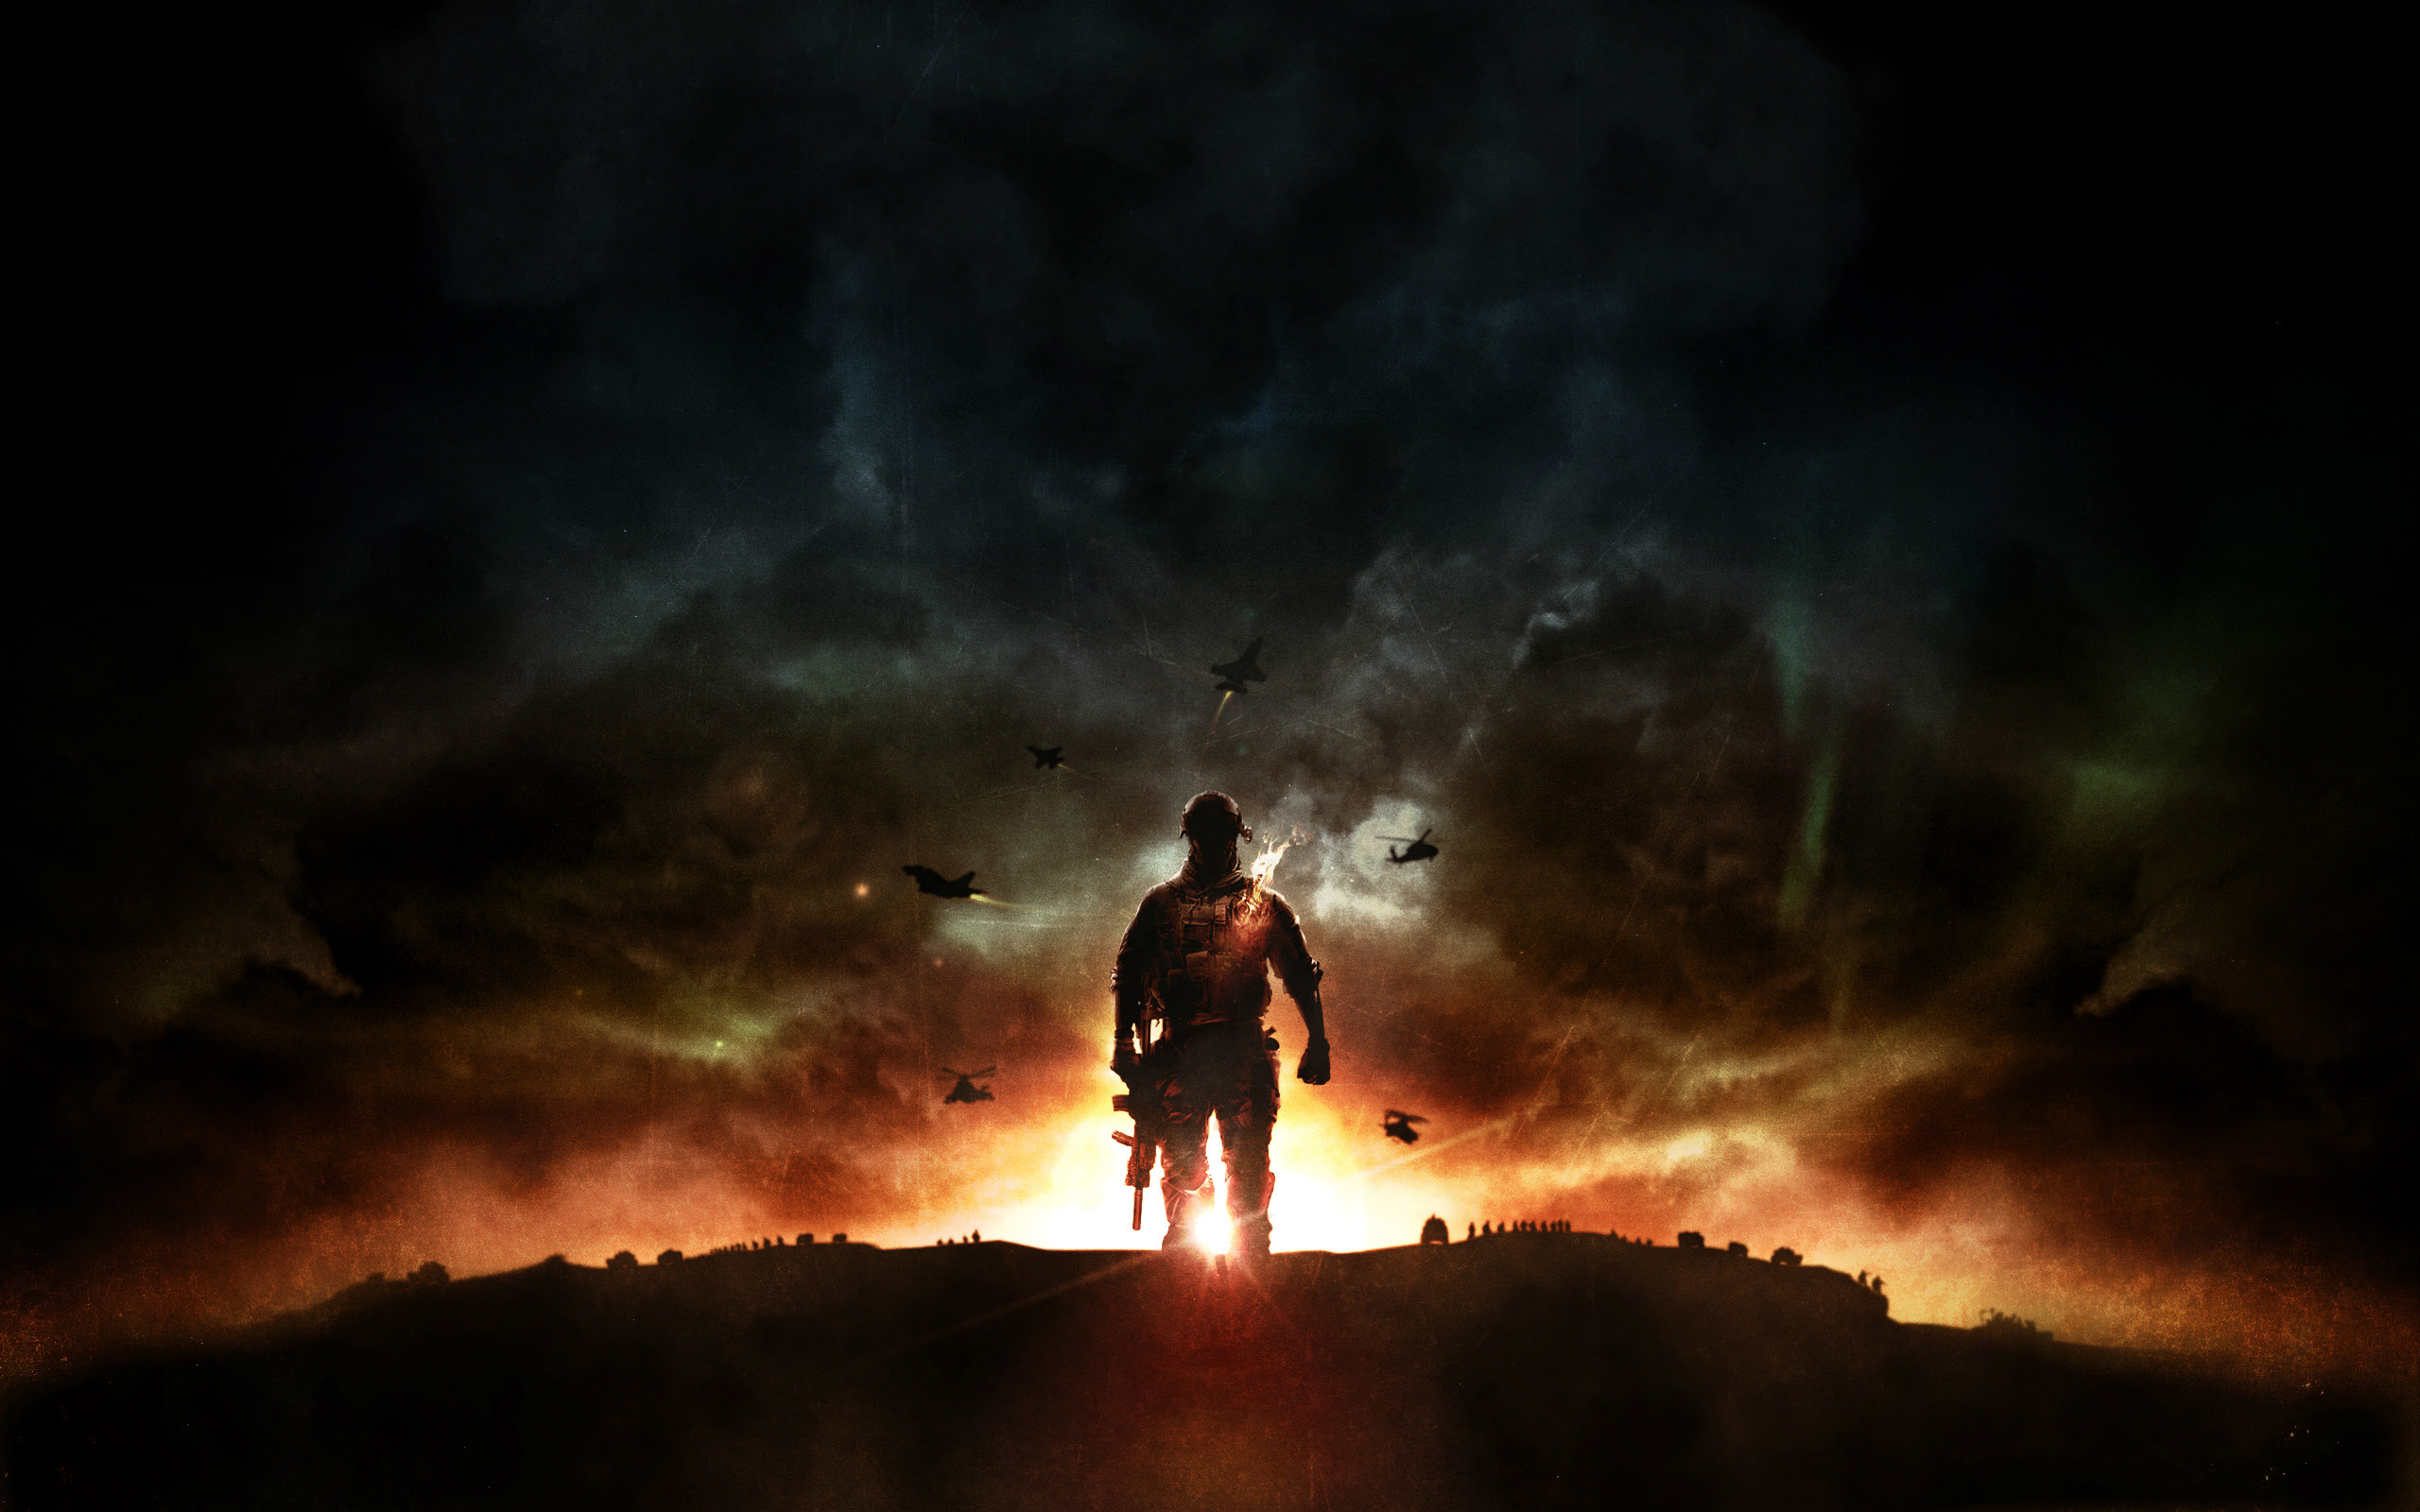 41 Widescreen Hq Definition Wallpapers Of Battlefield 4 For